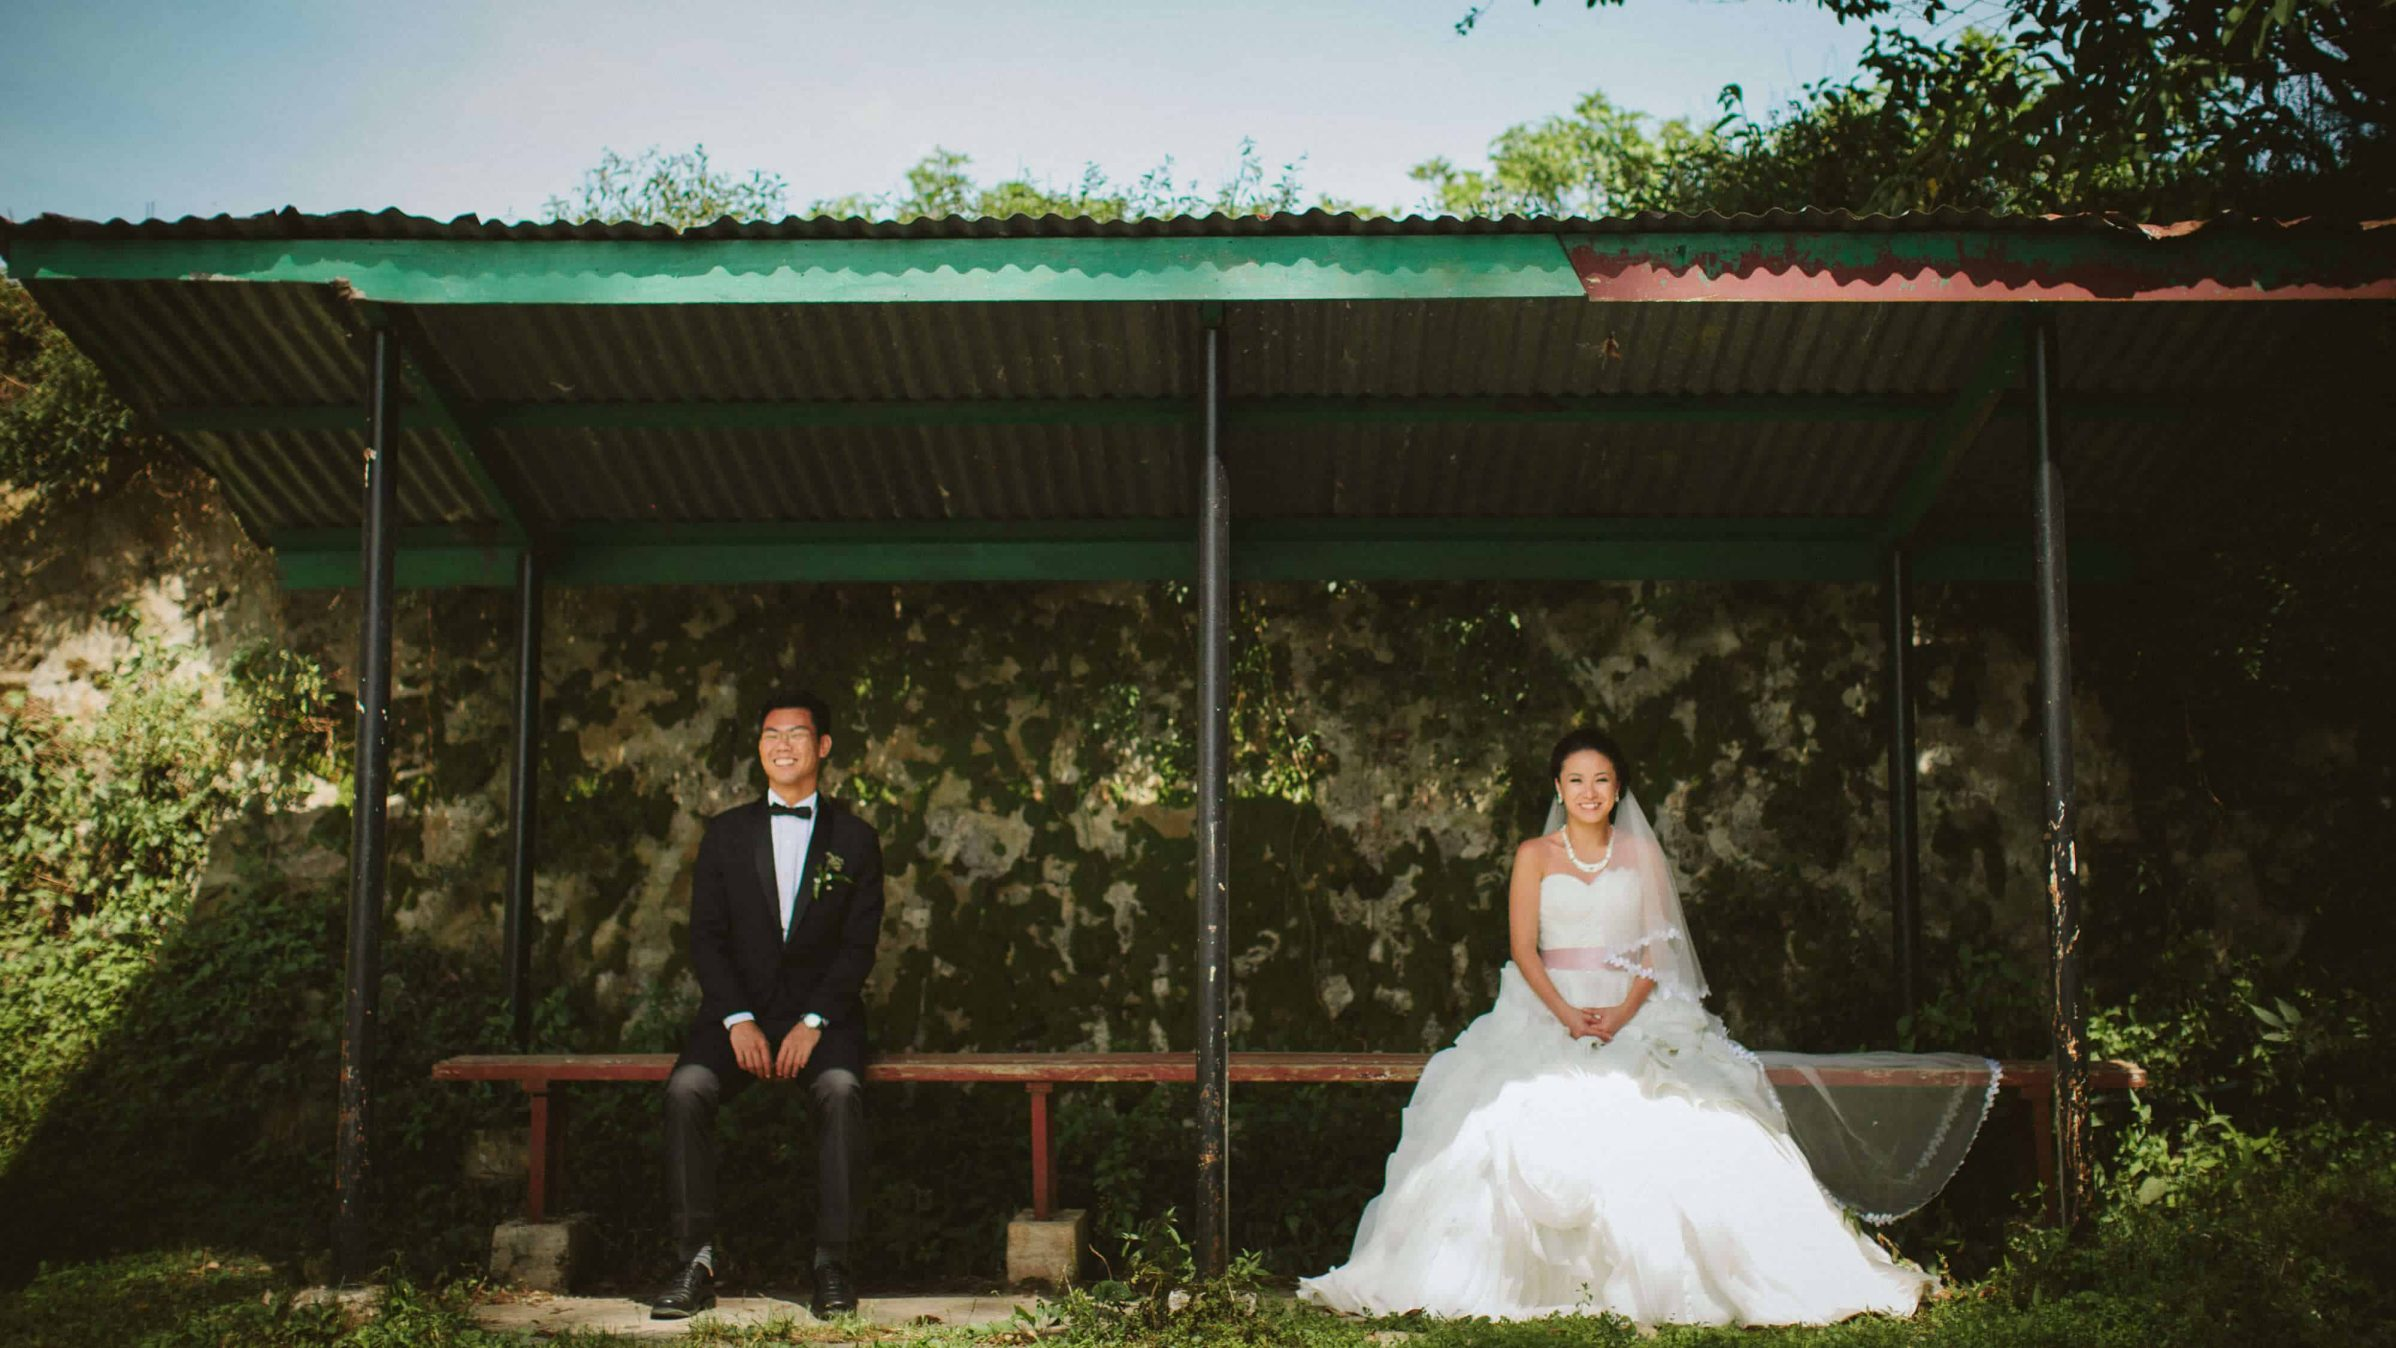 Malaysia Best Prewedding Destination Kota Kinabalu Engagement Photography Cliff Choong wedding photographer nature beach cloud blue sky kiss couple hug veil bridal gown cameron highlands